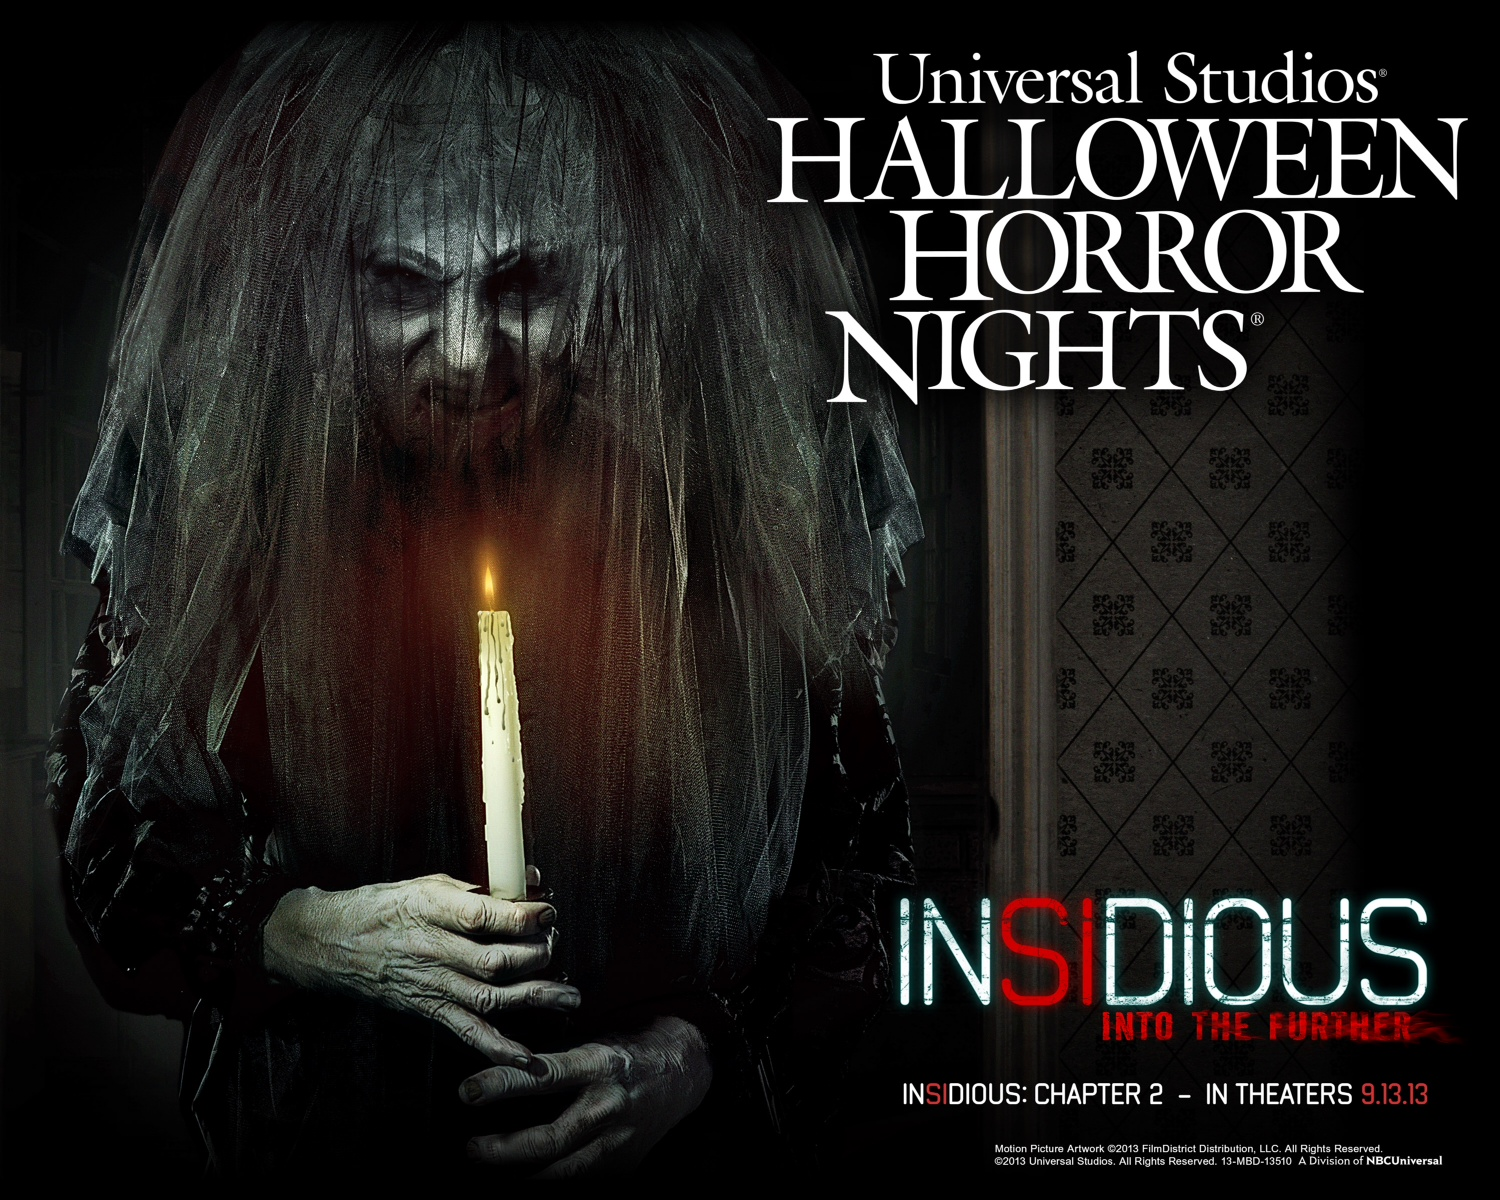 Enter Insidious: Chapter 2 with Universal's Halloween Horror Nights